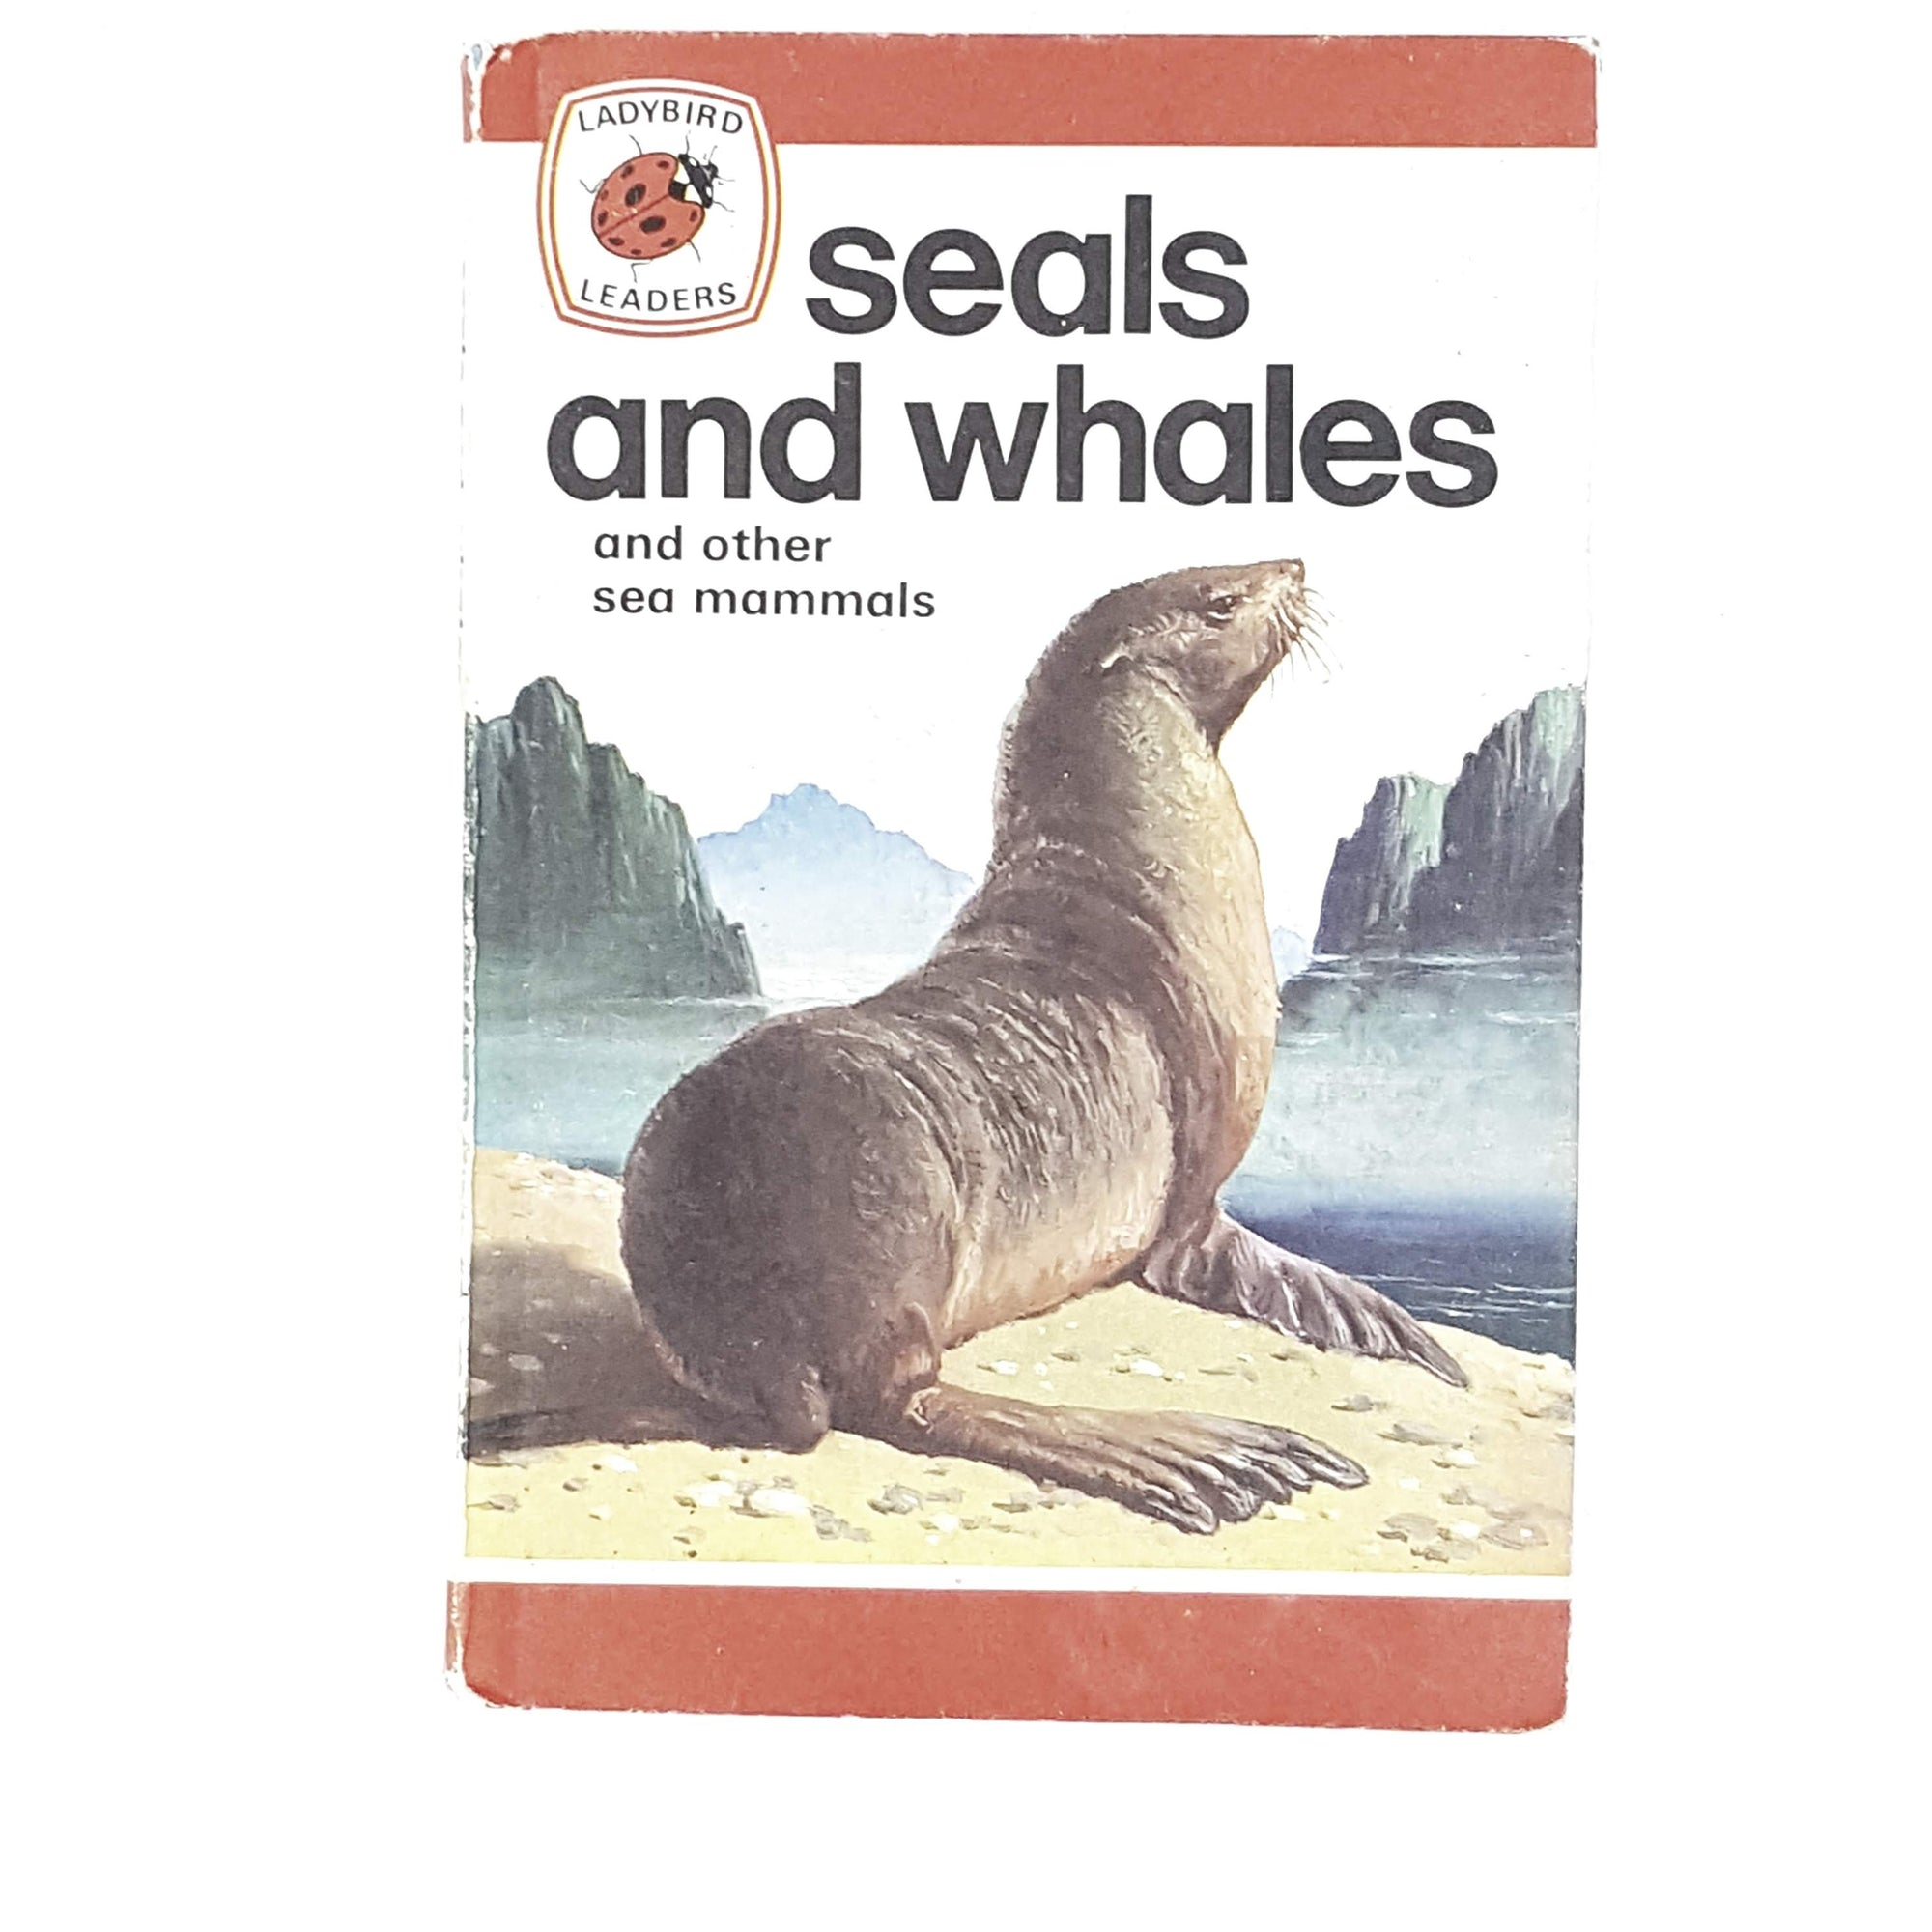 ladybird-leaders-seals-and-whales-1976-country-house-library